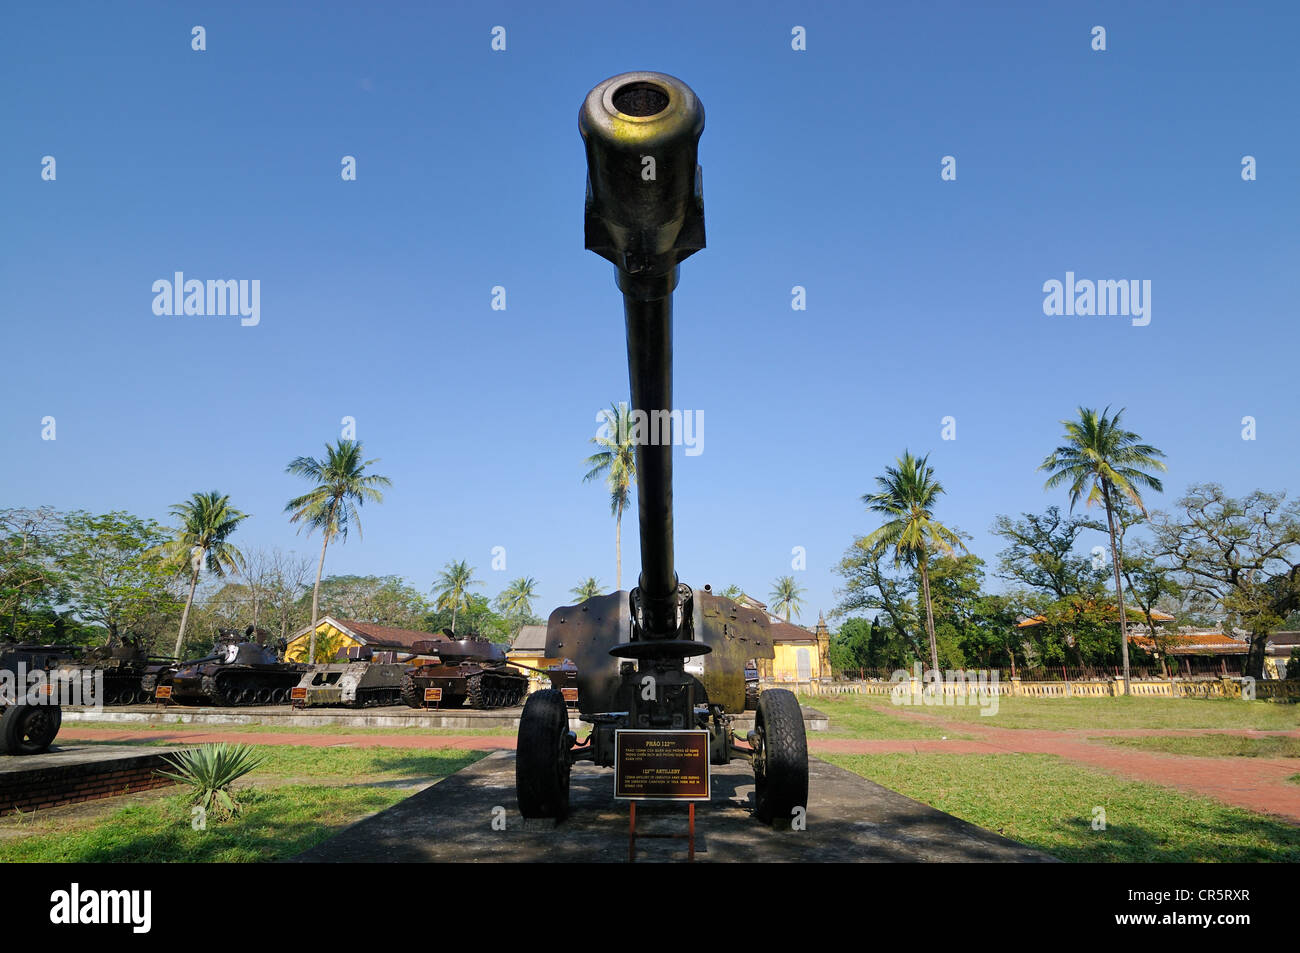 Cannon from the Vietnam War, 122 mm artillery of the Vietnamese liberation army, Hue, Vietnam, Asia - Stock Image